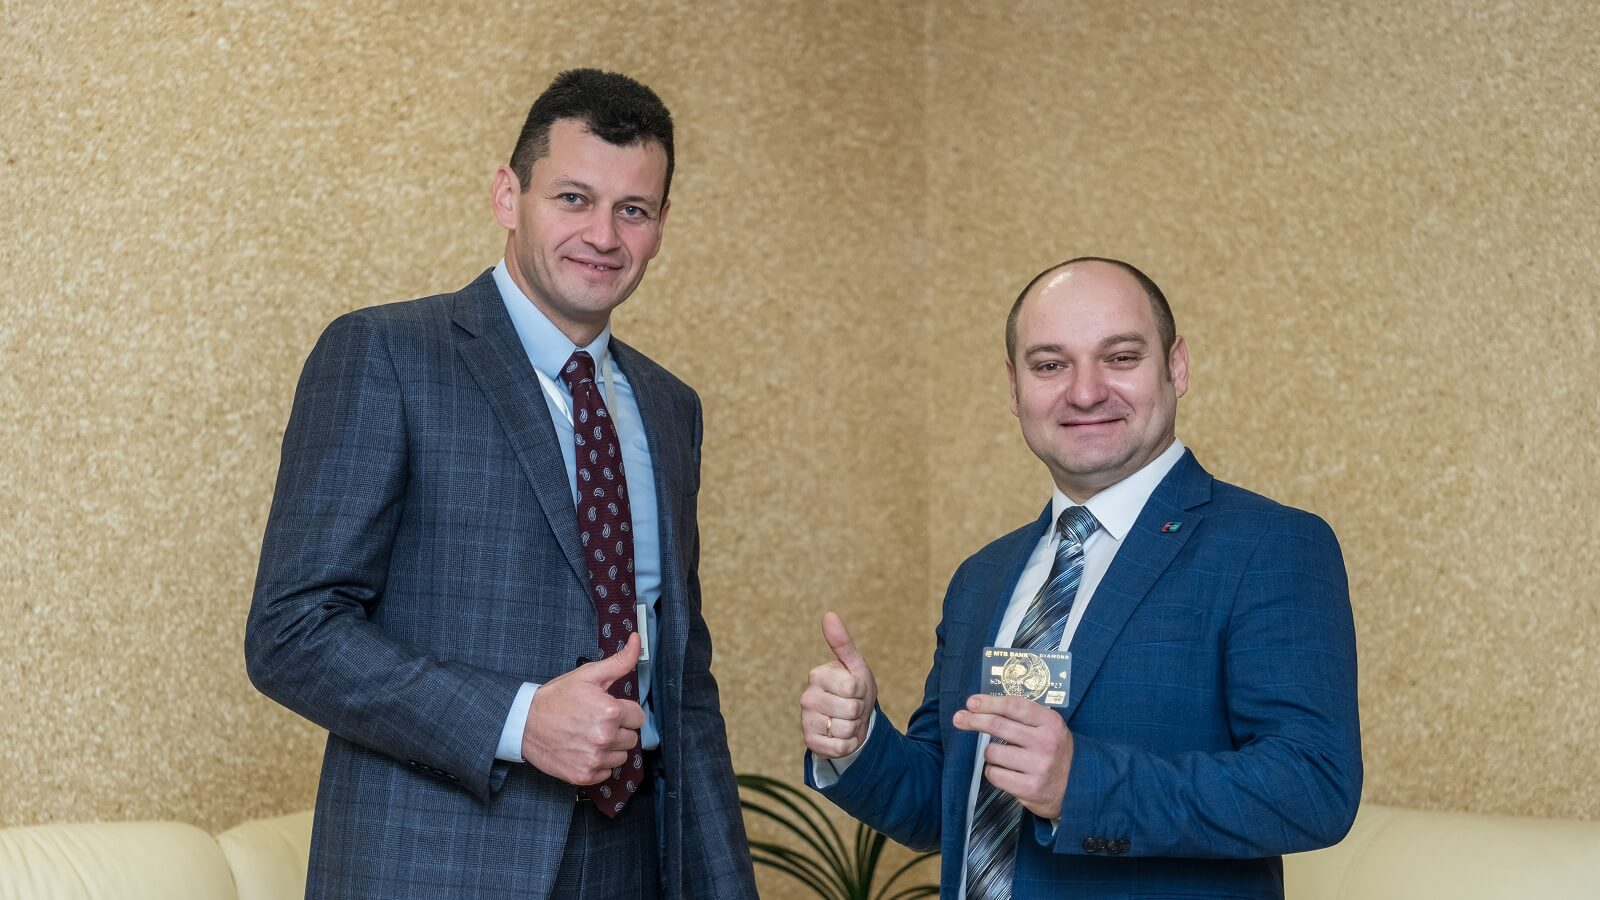 MTB bank is one of the first banks in Ukraine to start issuing UnionPay payment cards - photo - mtb.ua